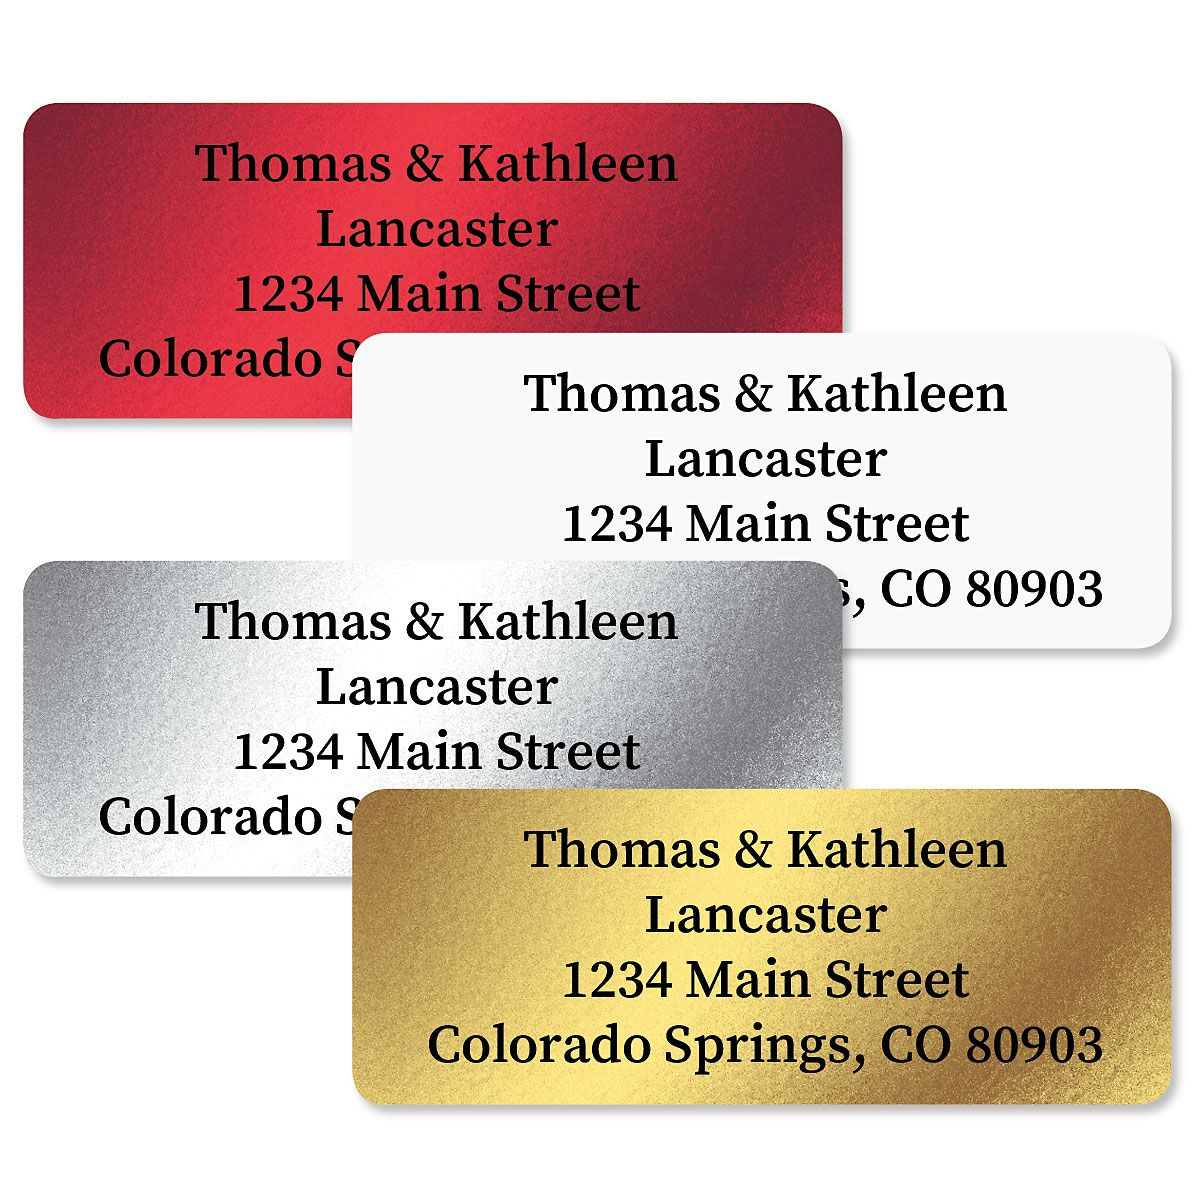 Foil Assortment Die Cut Address Labels  (4 Colors) - 240 Count Sheets